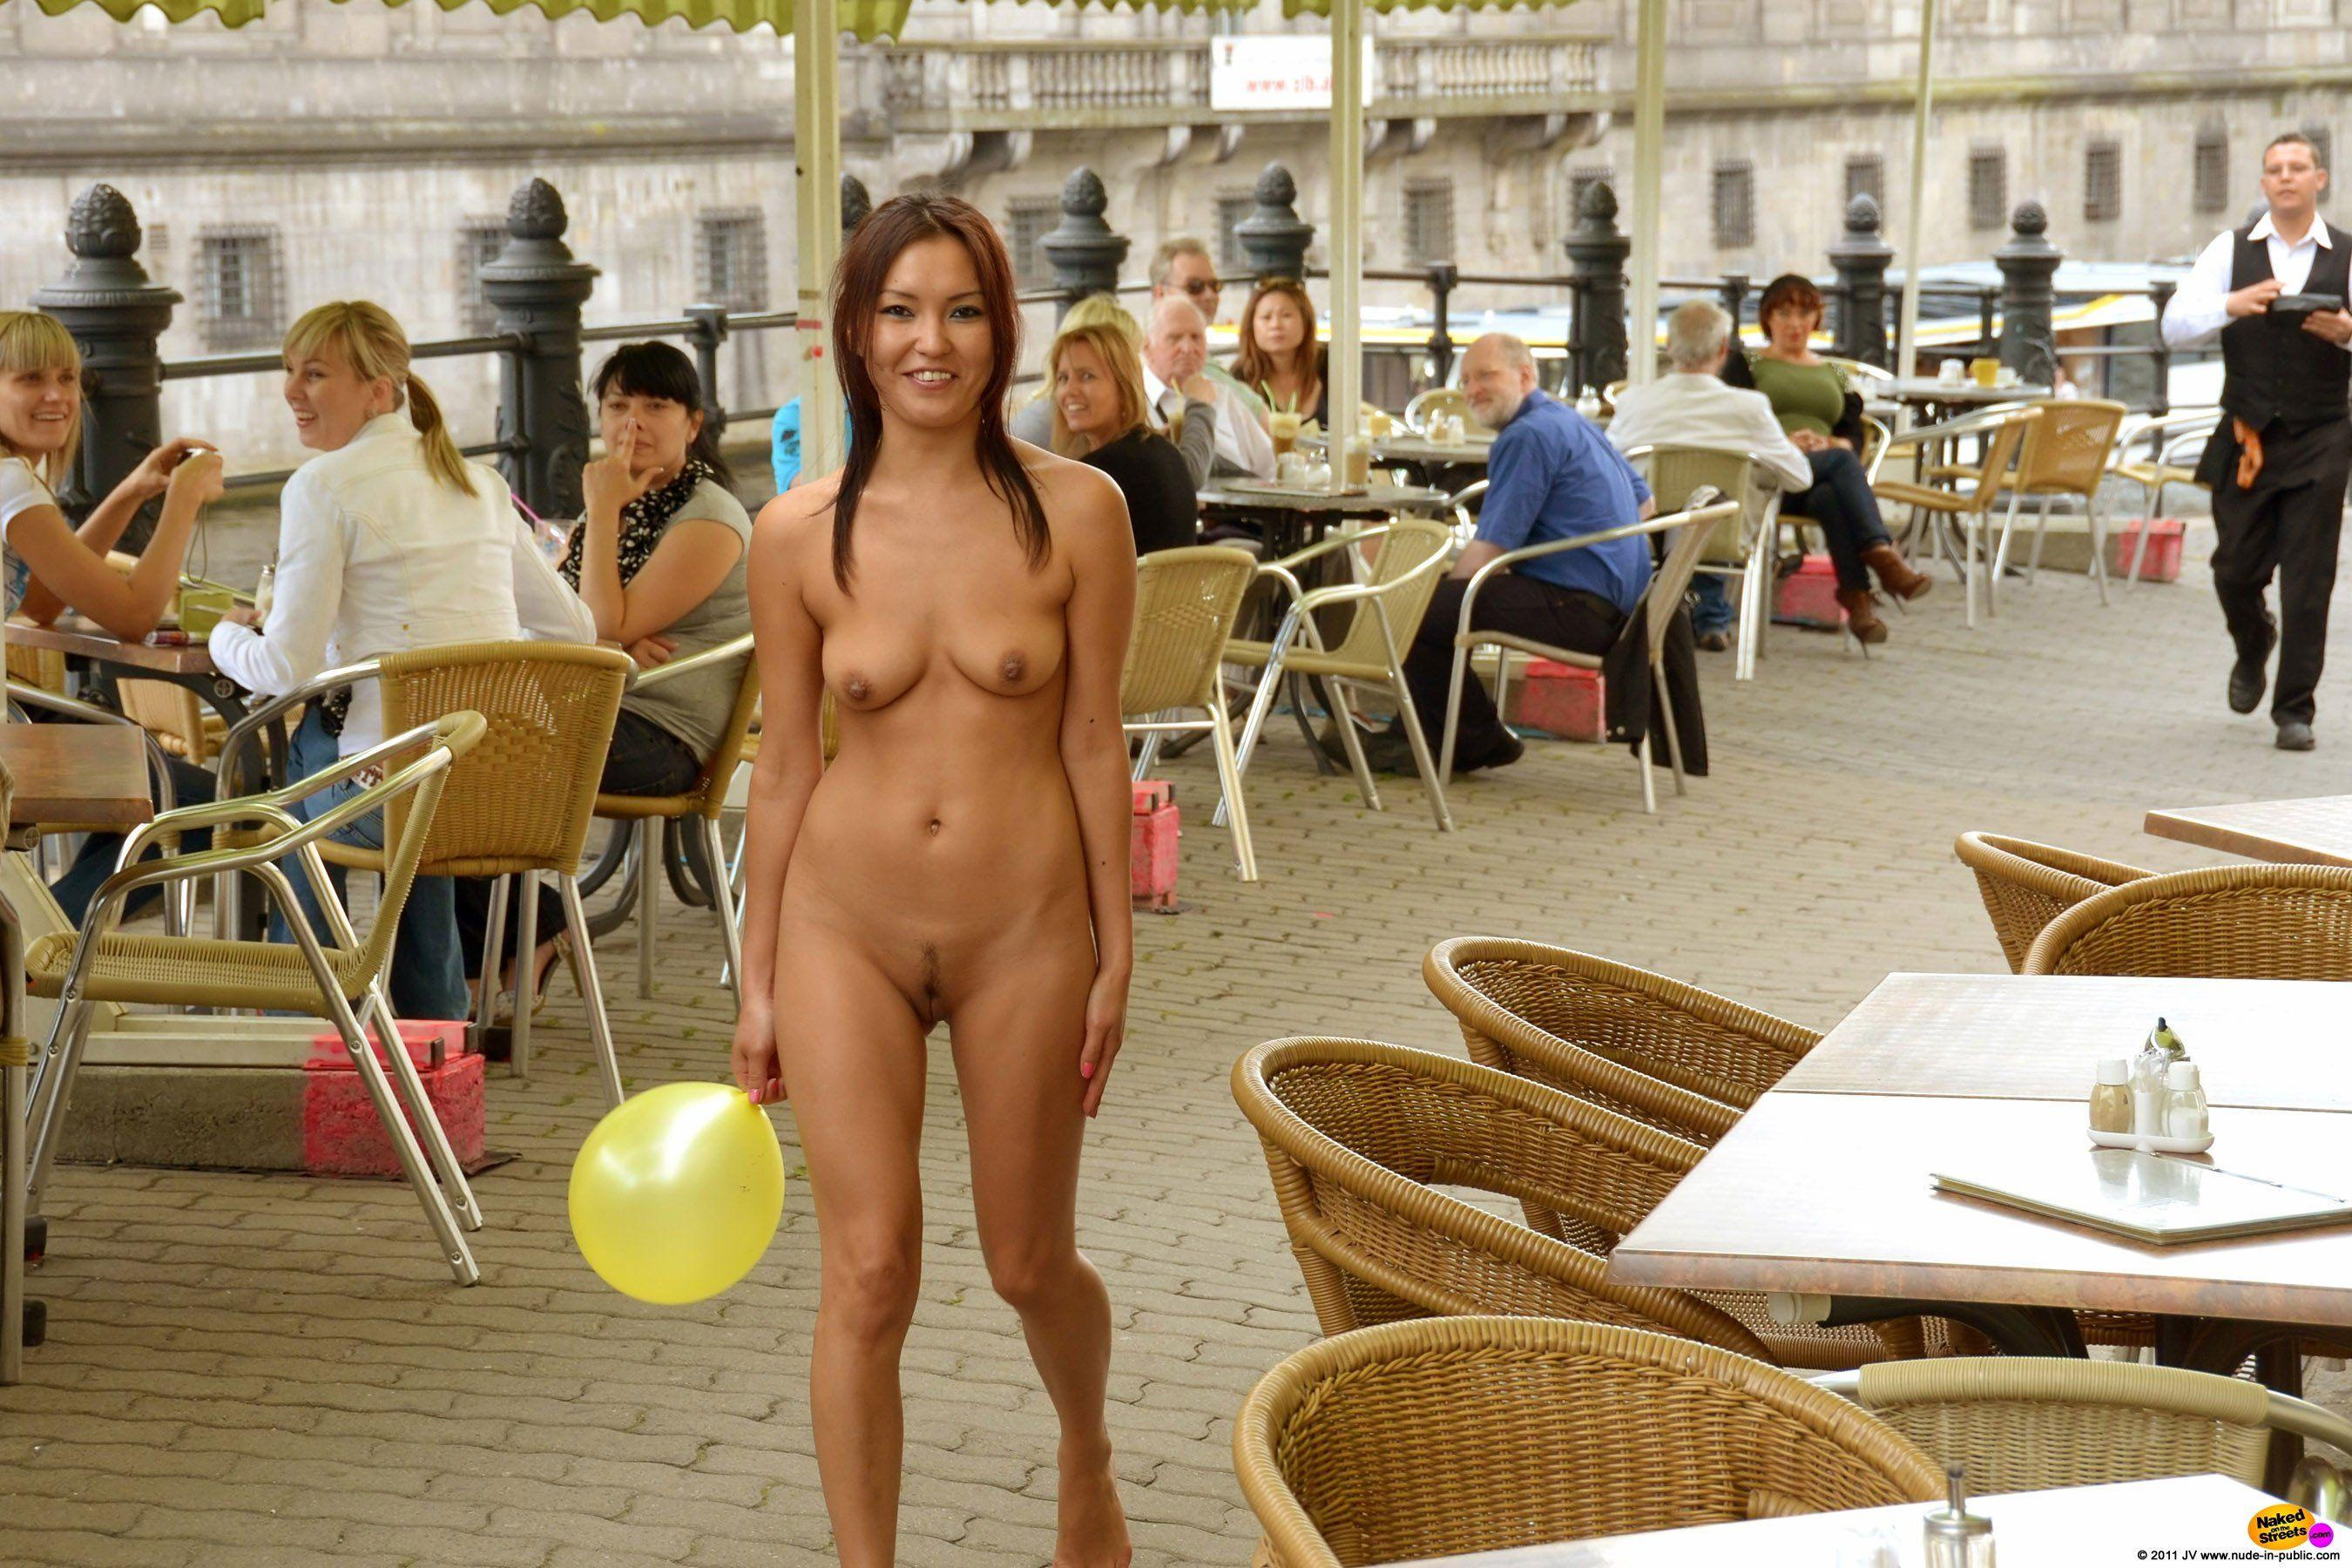 Real girls nude in public